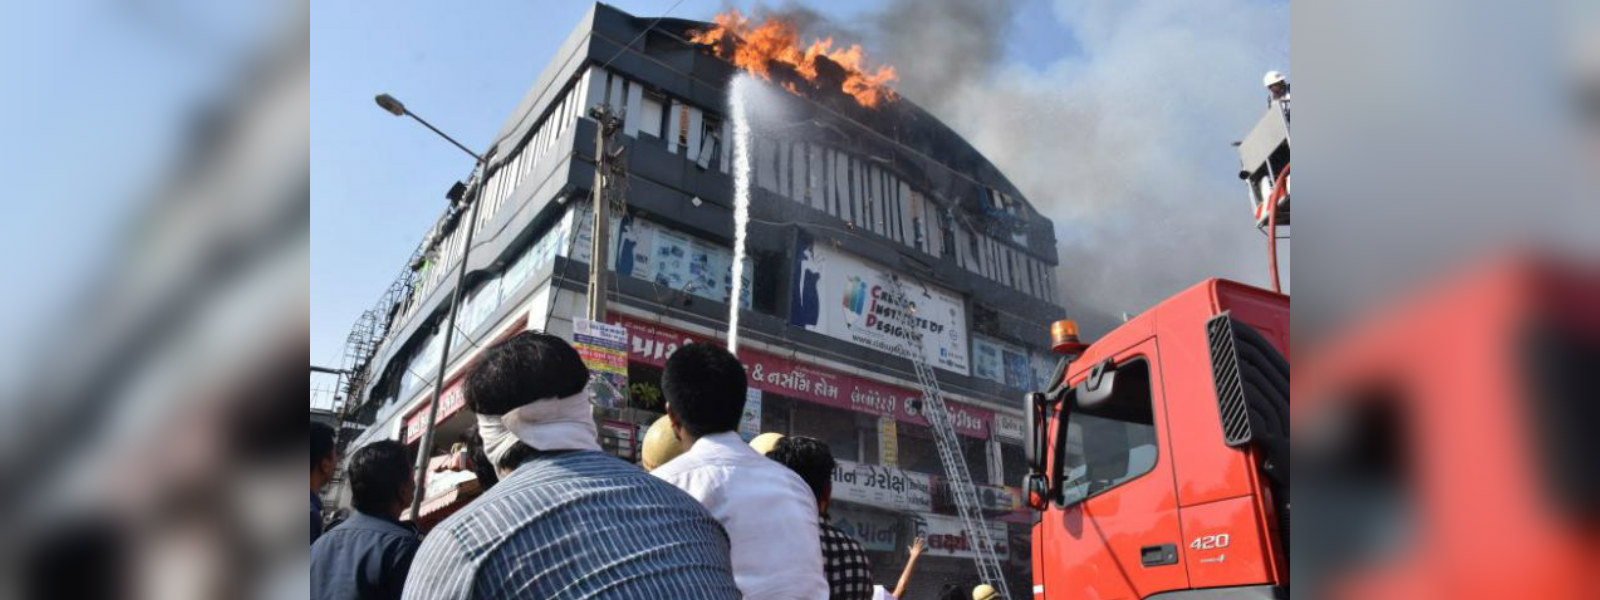 Indian police file case against three over coaching center fire, death toll rises to 20